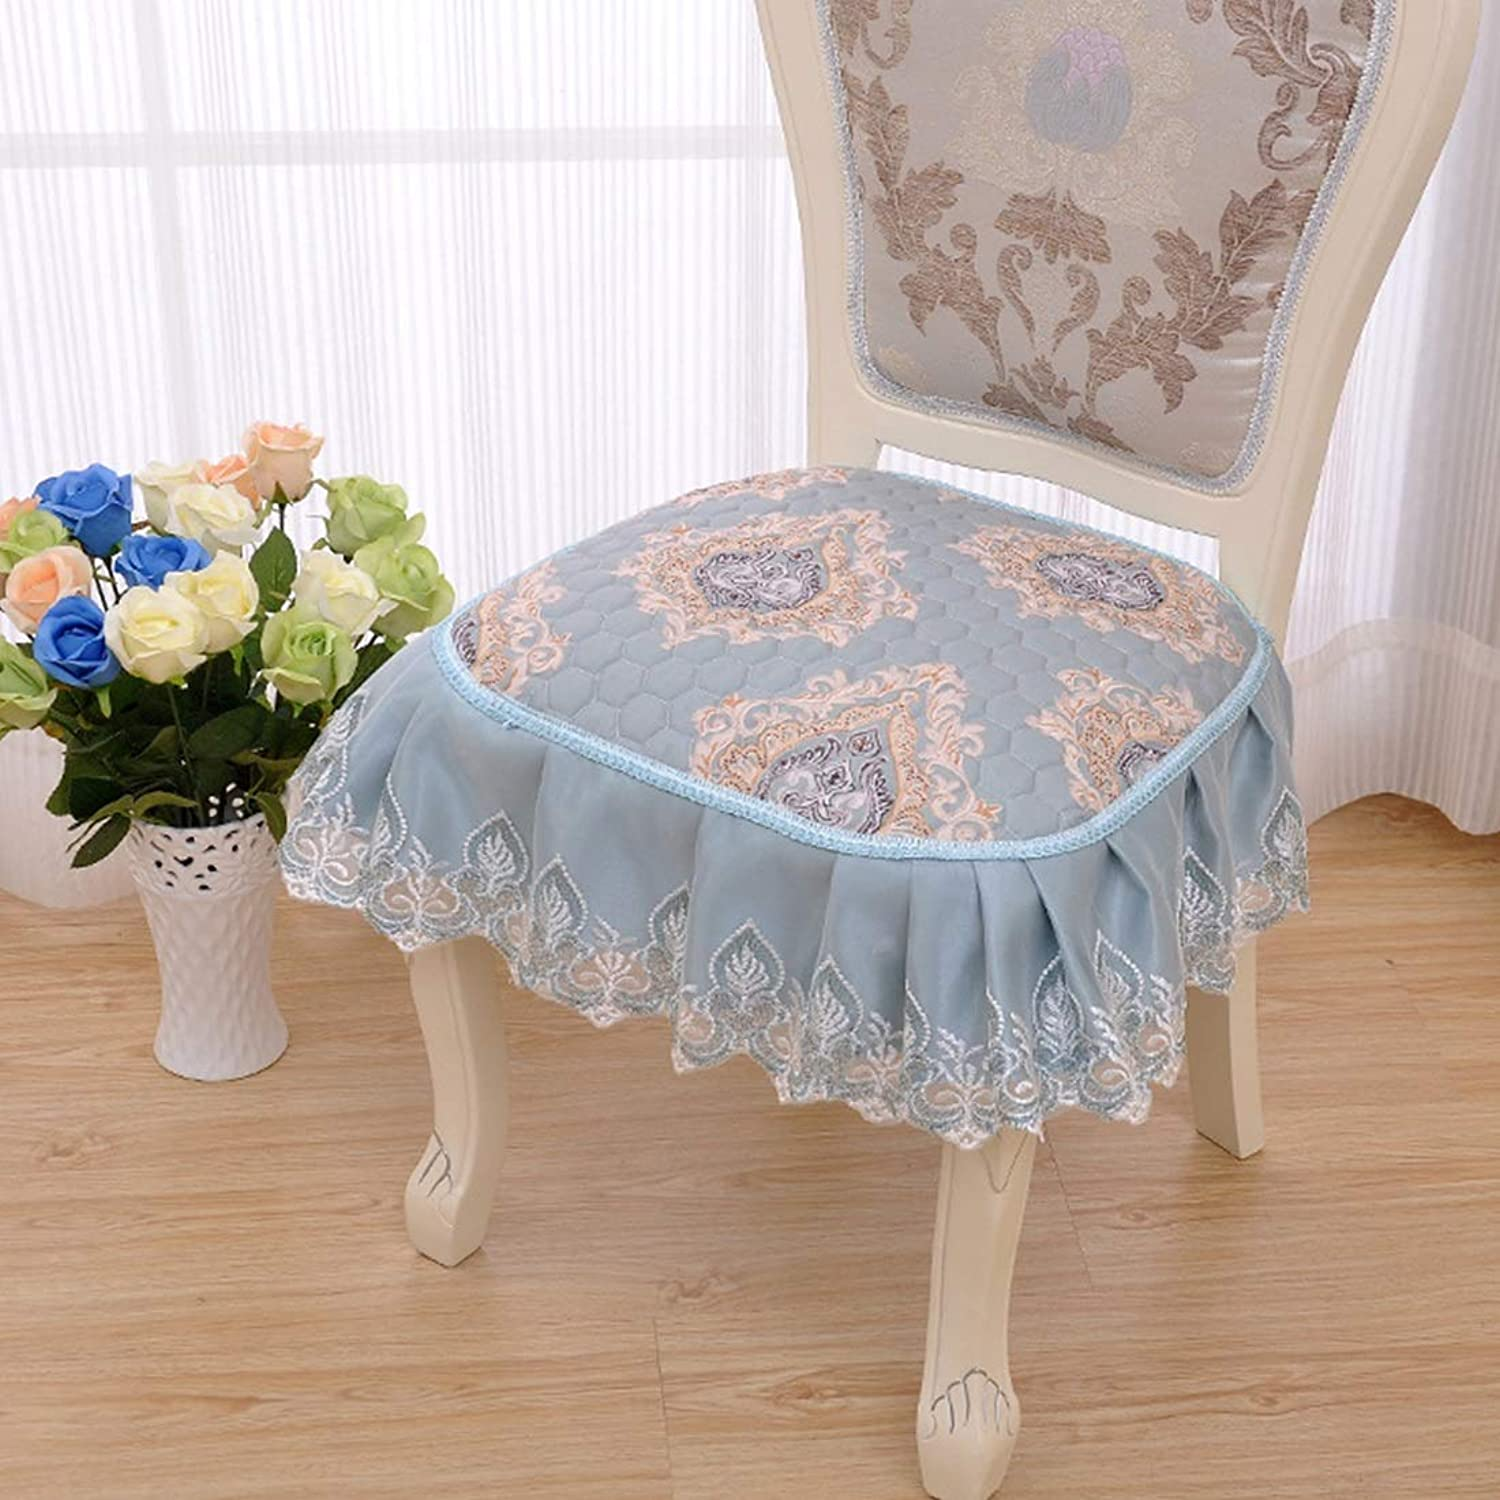 YY4 Lace Printed Dining Chair Mat Slip Resistant Strap Thickened Dining Chair Cushion (color   Emperor bluee)